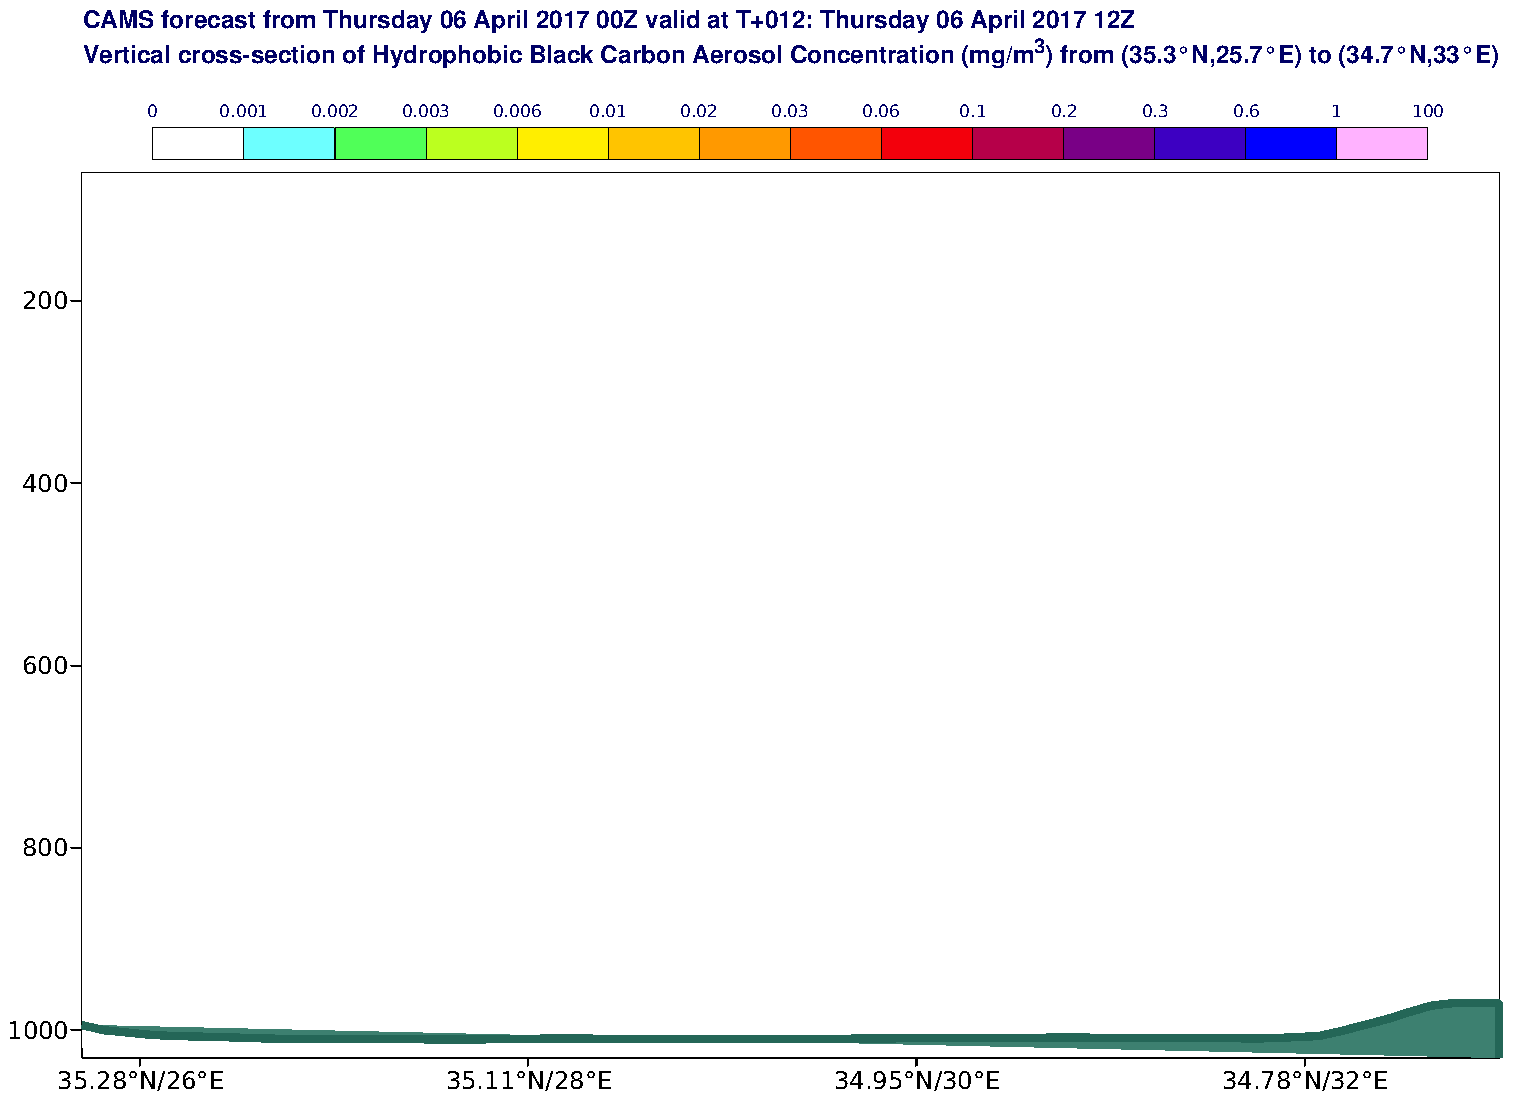 Vertical cross-section of Hydrophobic Black Carbon Aerosol Concentration (mg/m3) valid at T12 - 2017-04-06 12:00